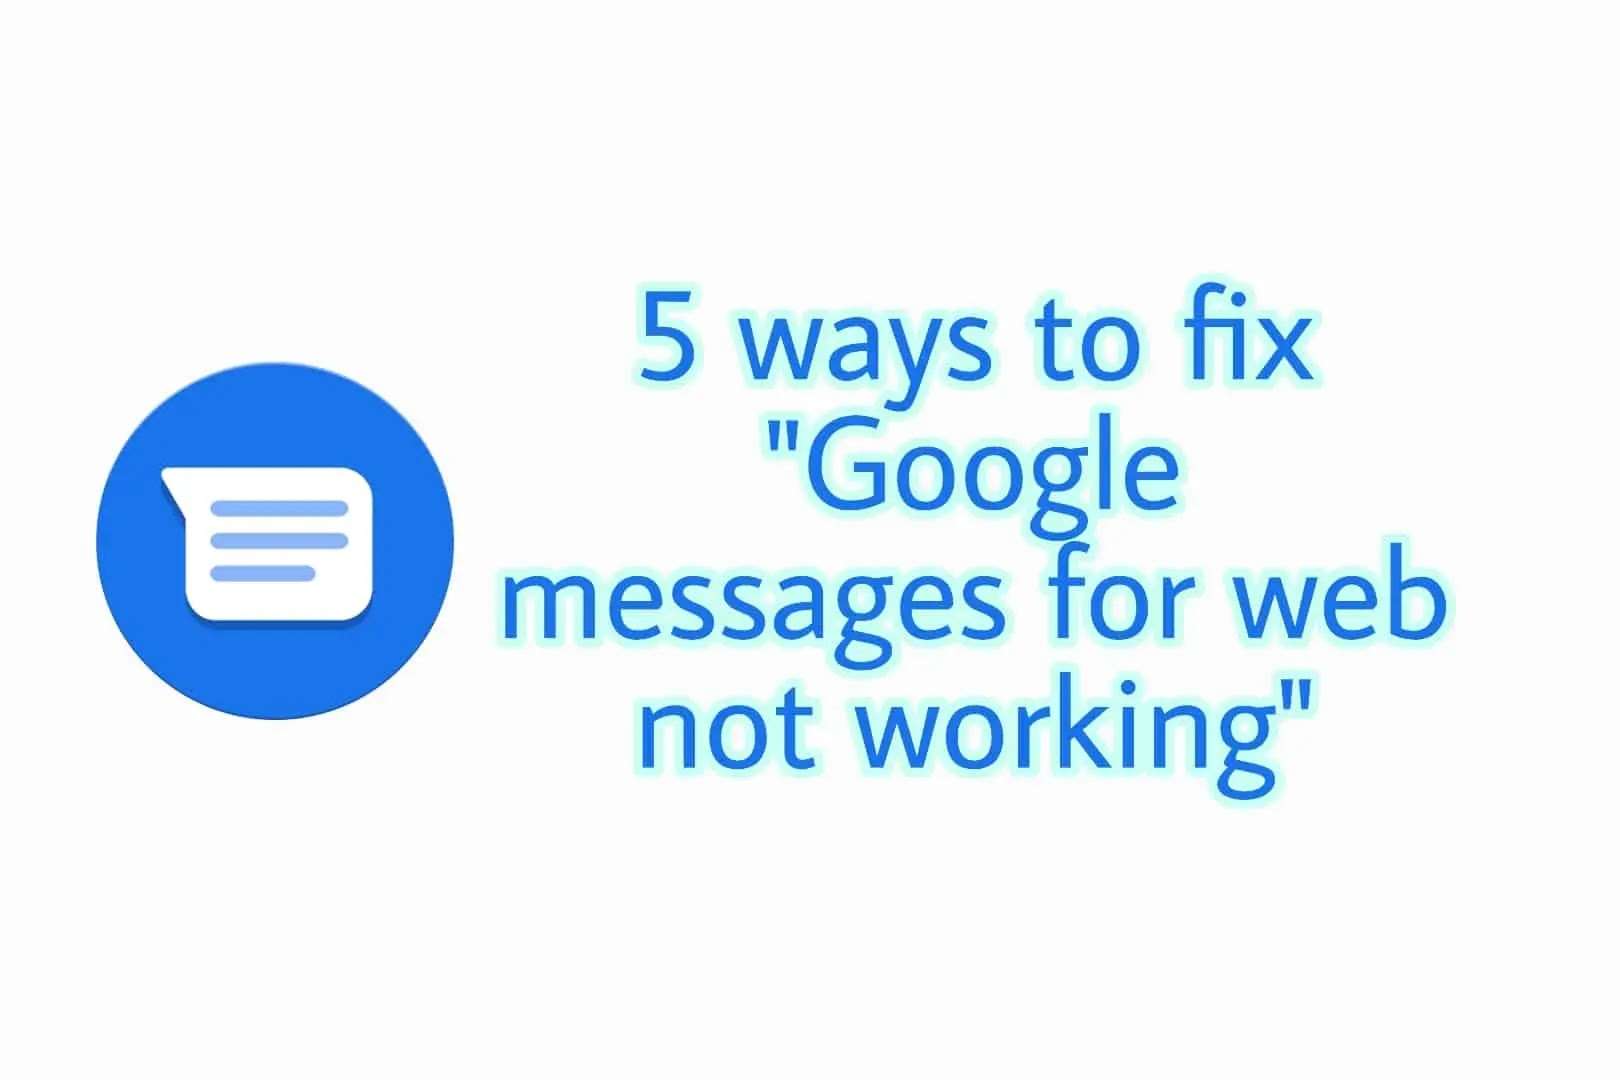 Google Messages for web not working